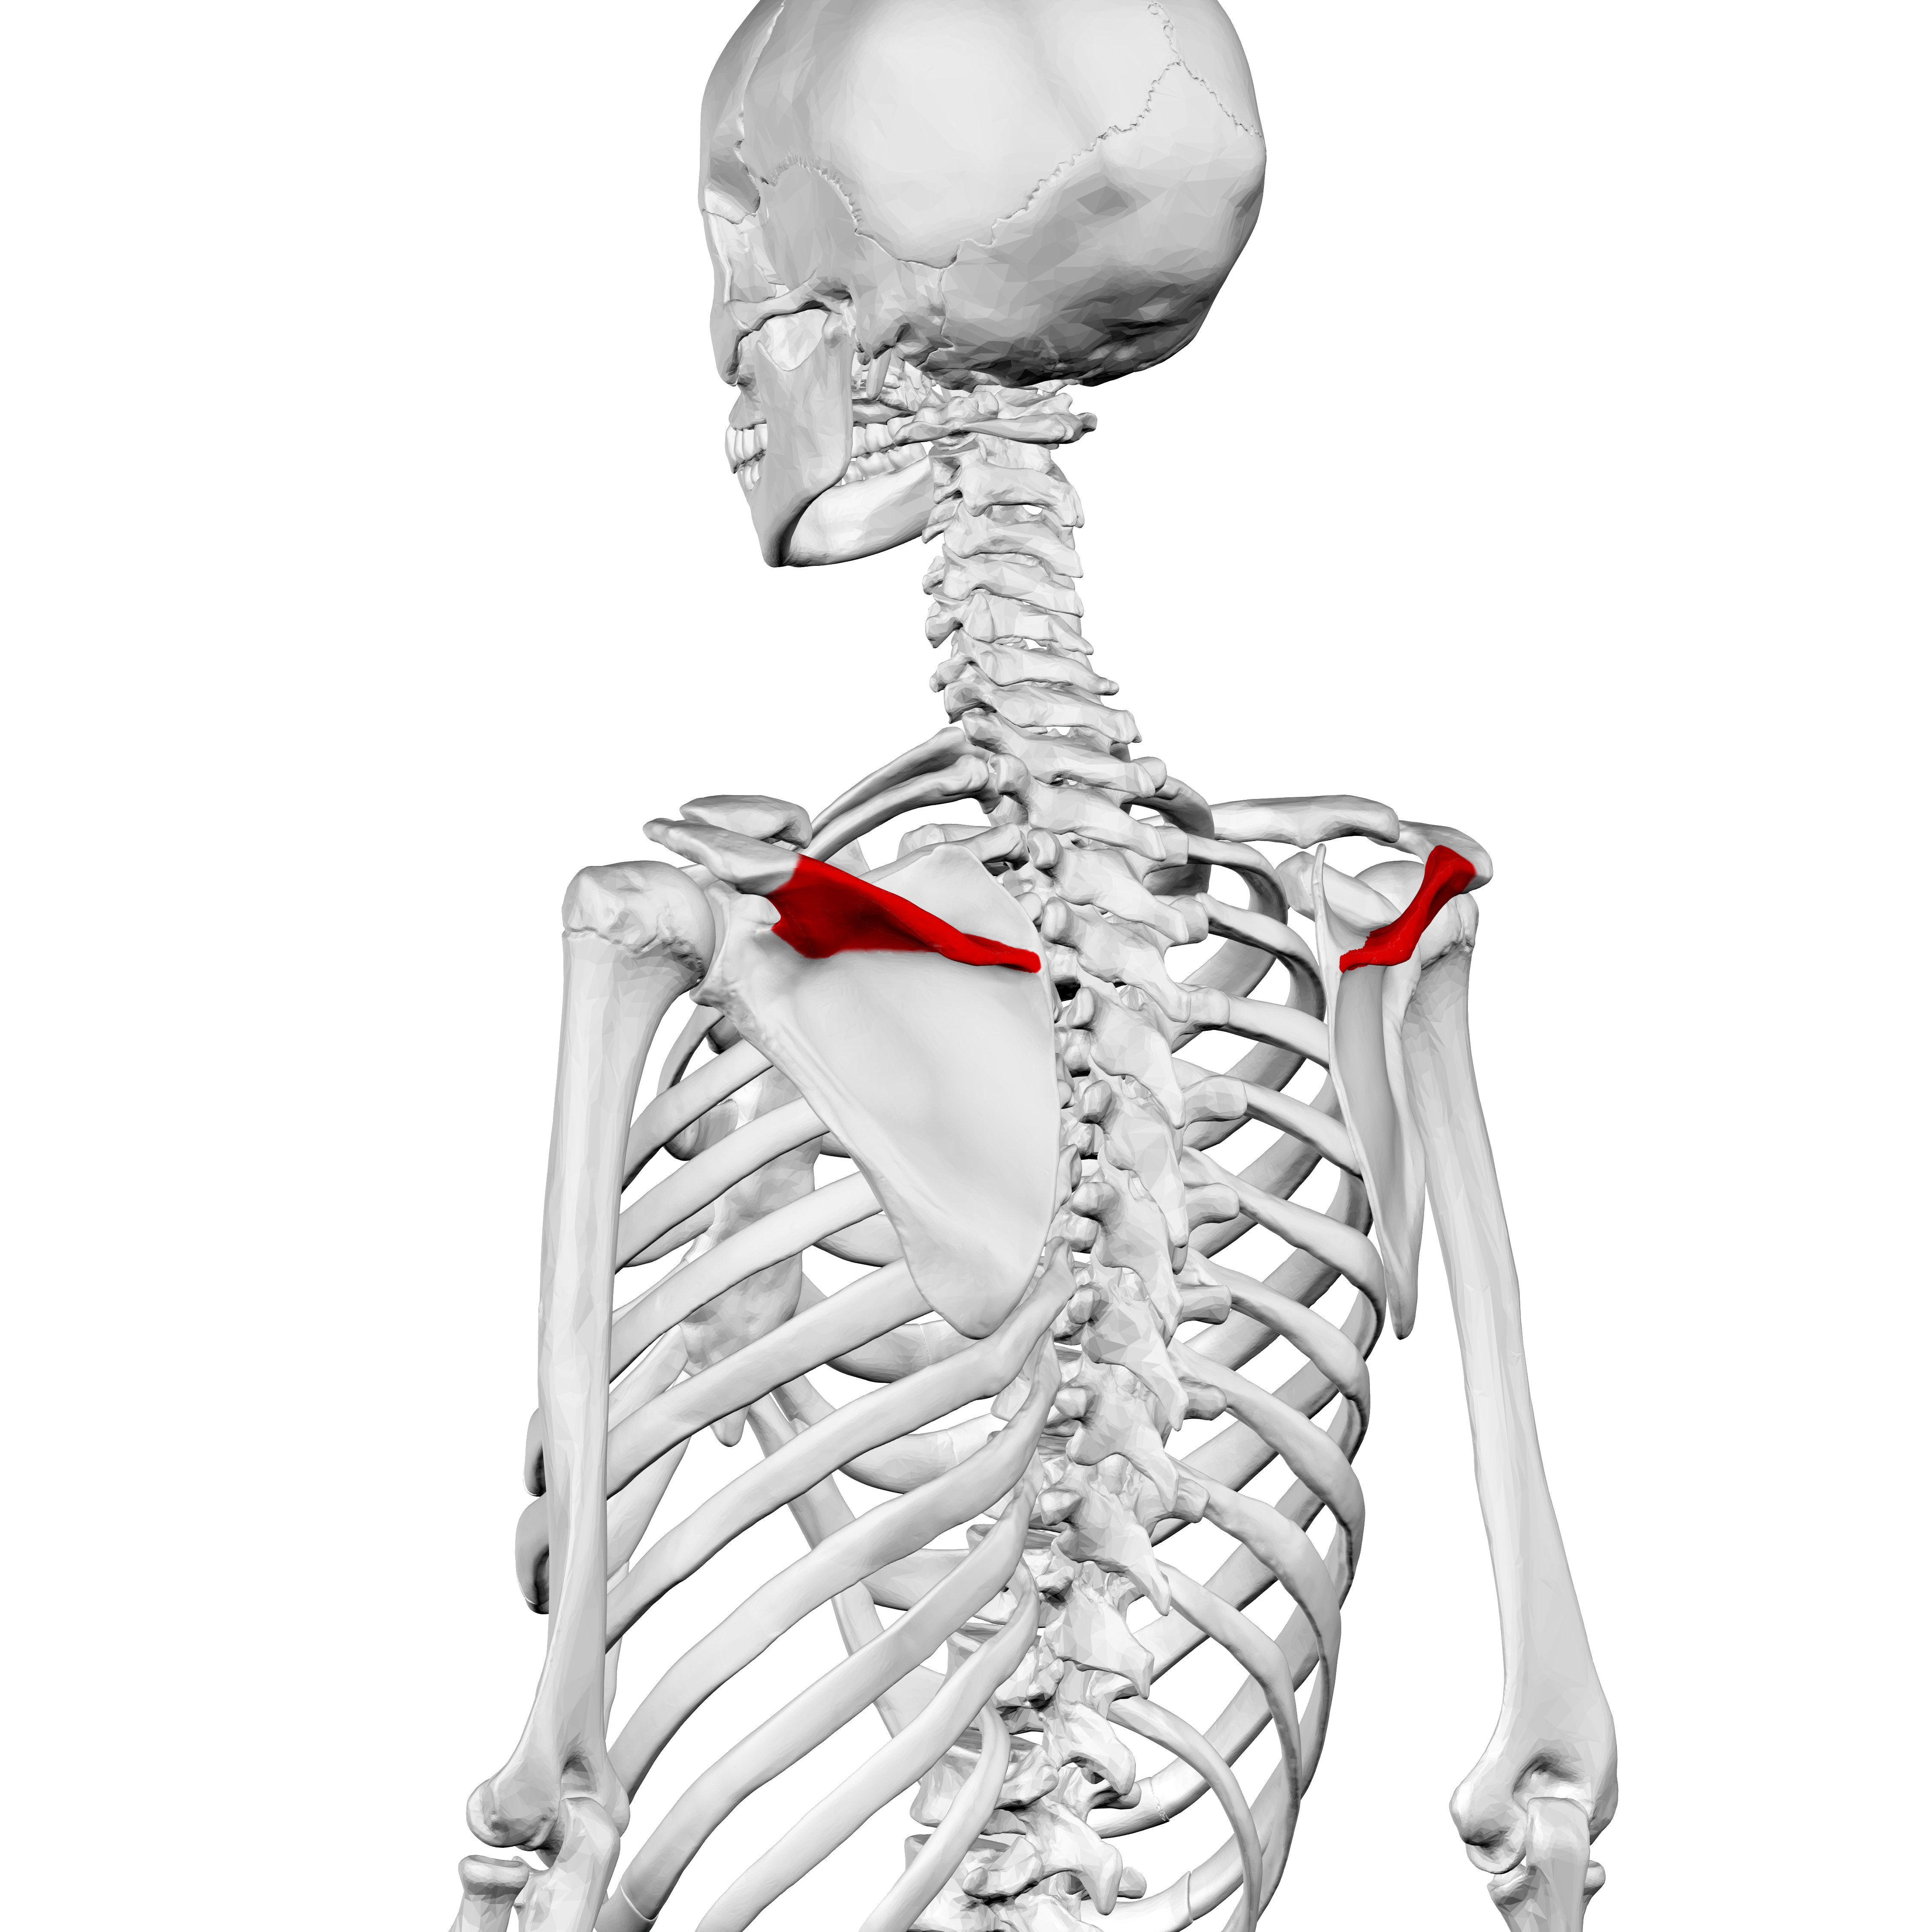 File:Spine of scapula02.png - Wikimedia Commons